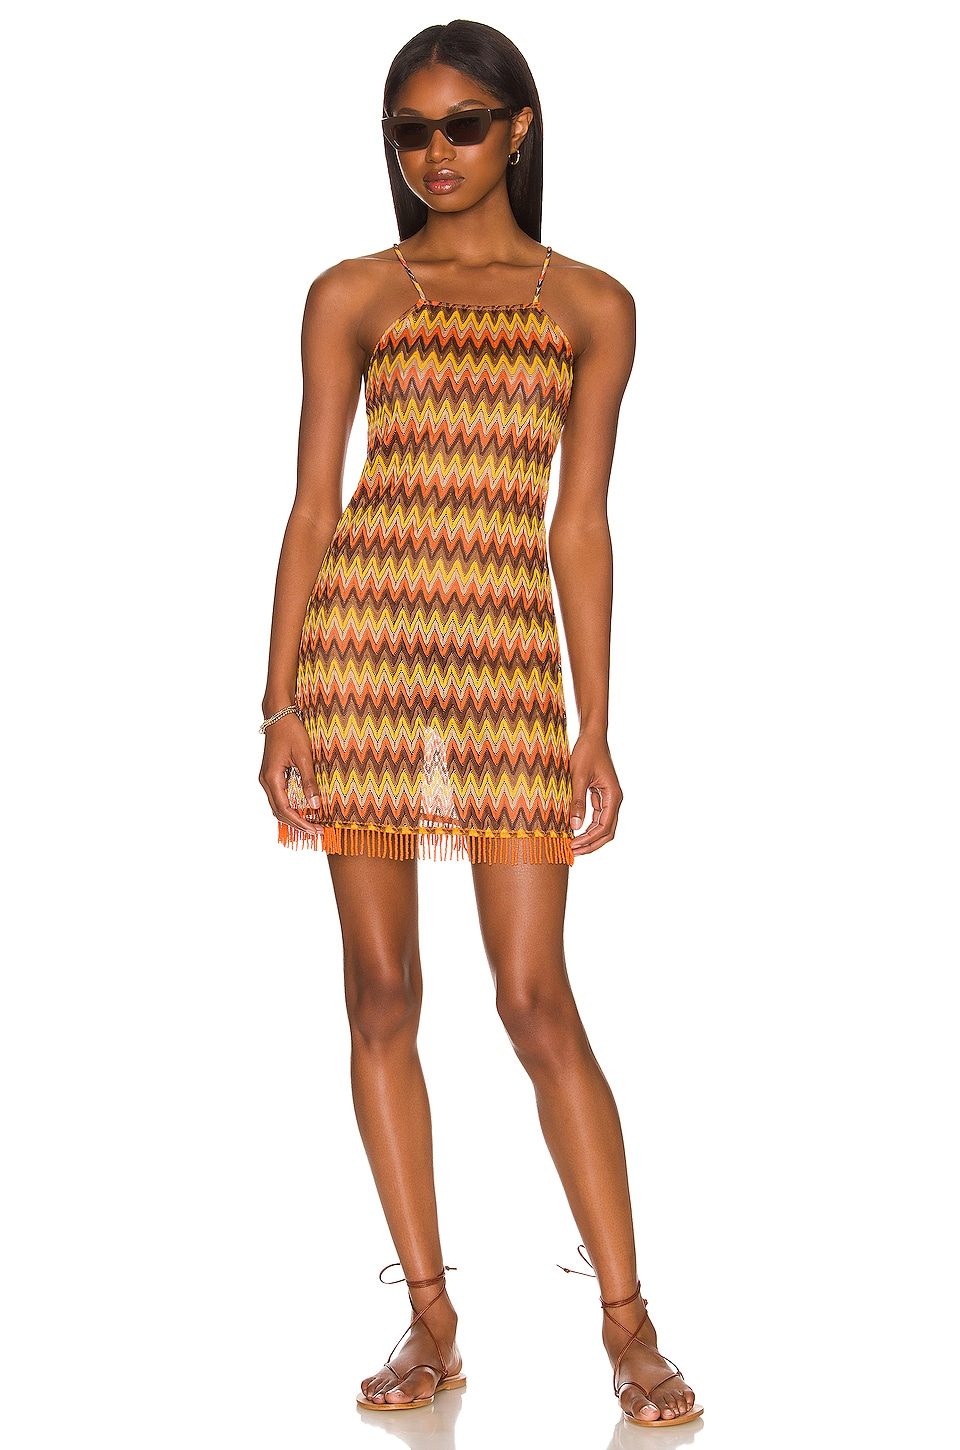 House of Harlow 1960 X REVOLVE Missy Dress in Rusty Chevron